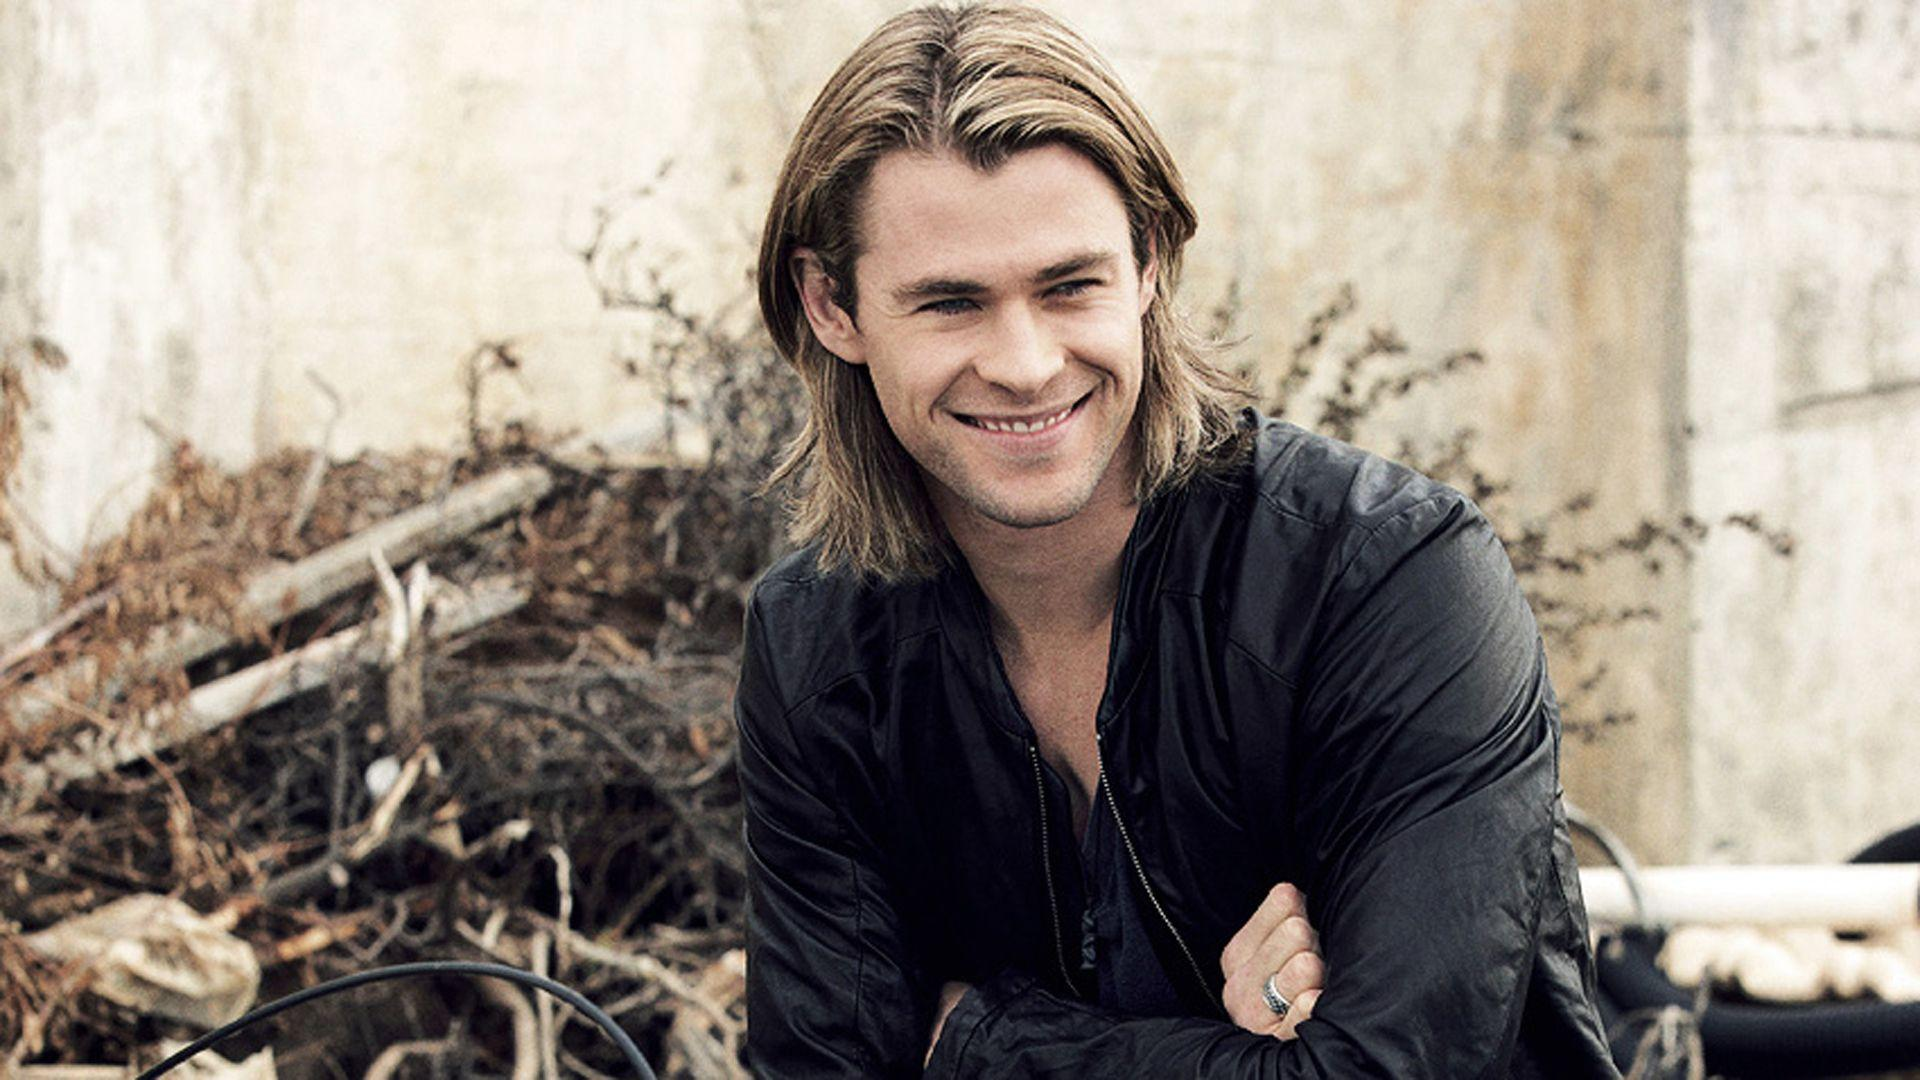 Chris Hemsworth Wallpapers And Backgrounds